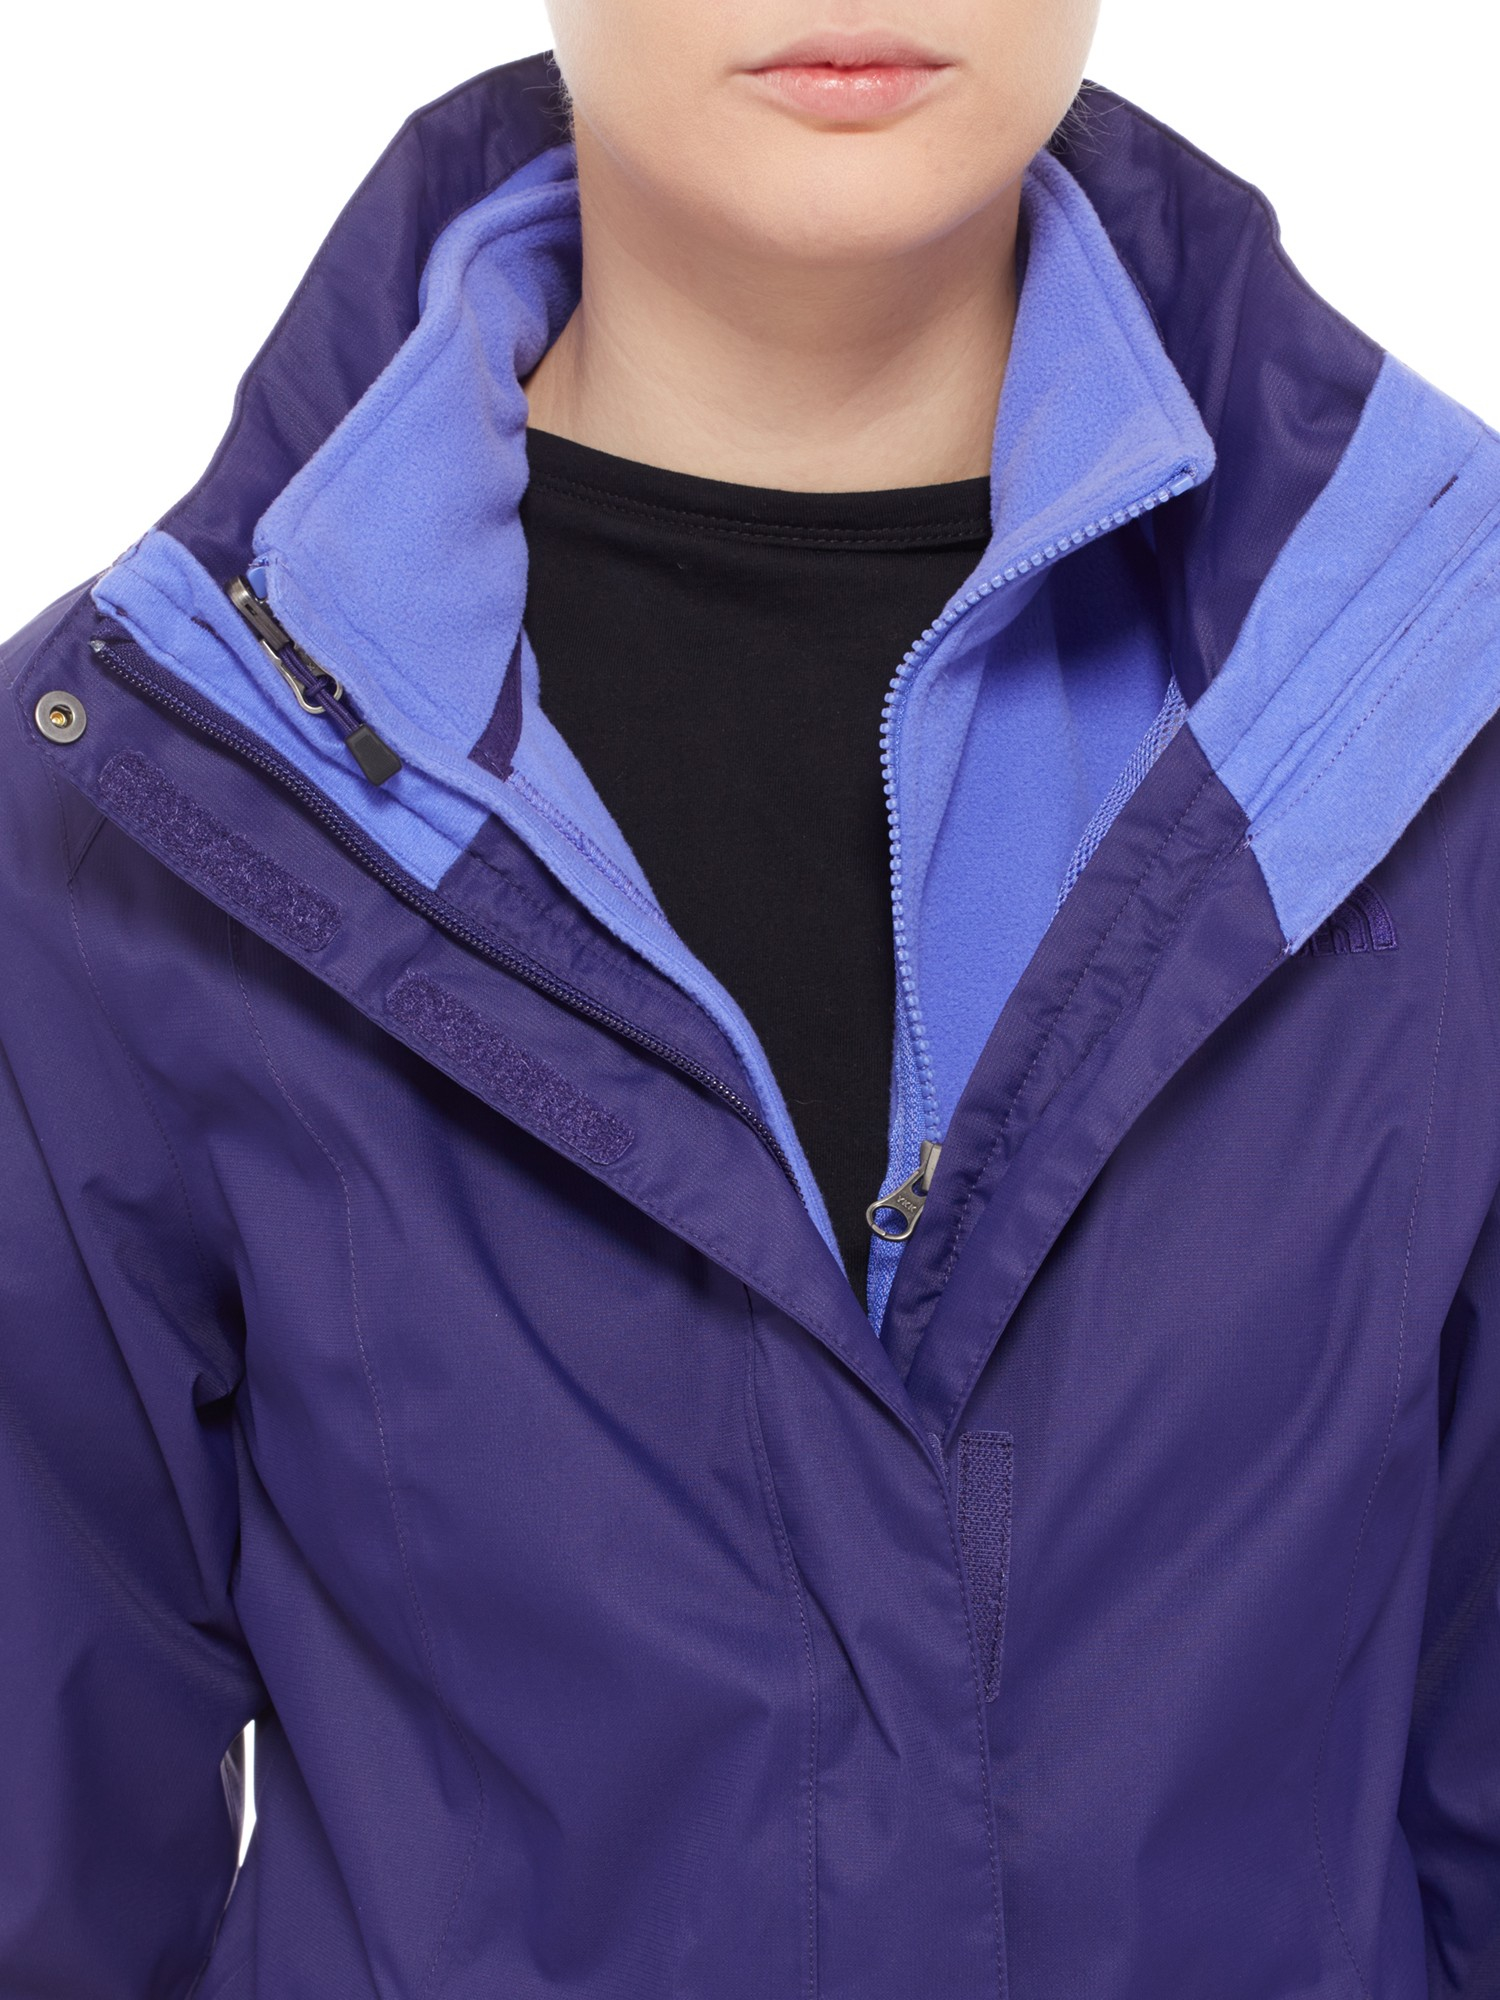 The North Face Evolve Ii Triclimate 3-in-1 Waterproof Women s Jacket ... 34ac12e791